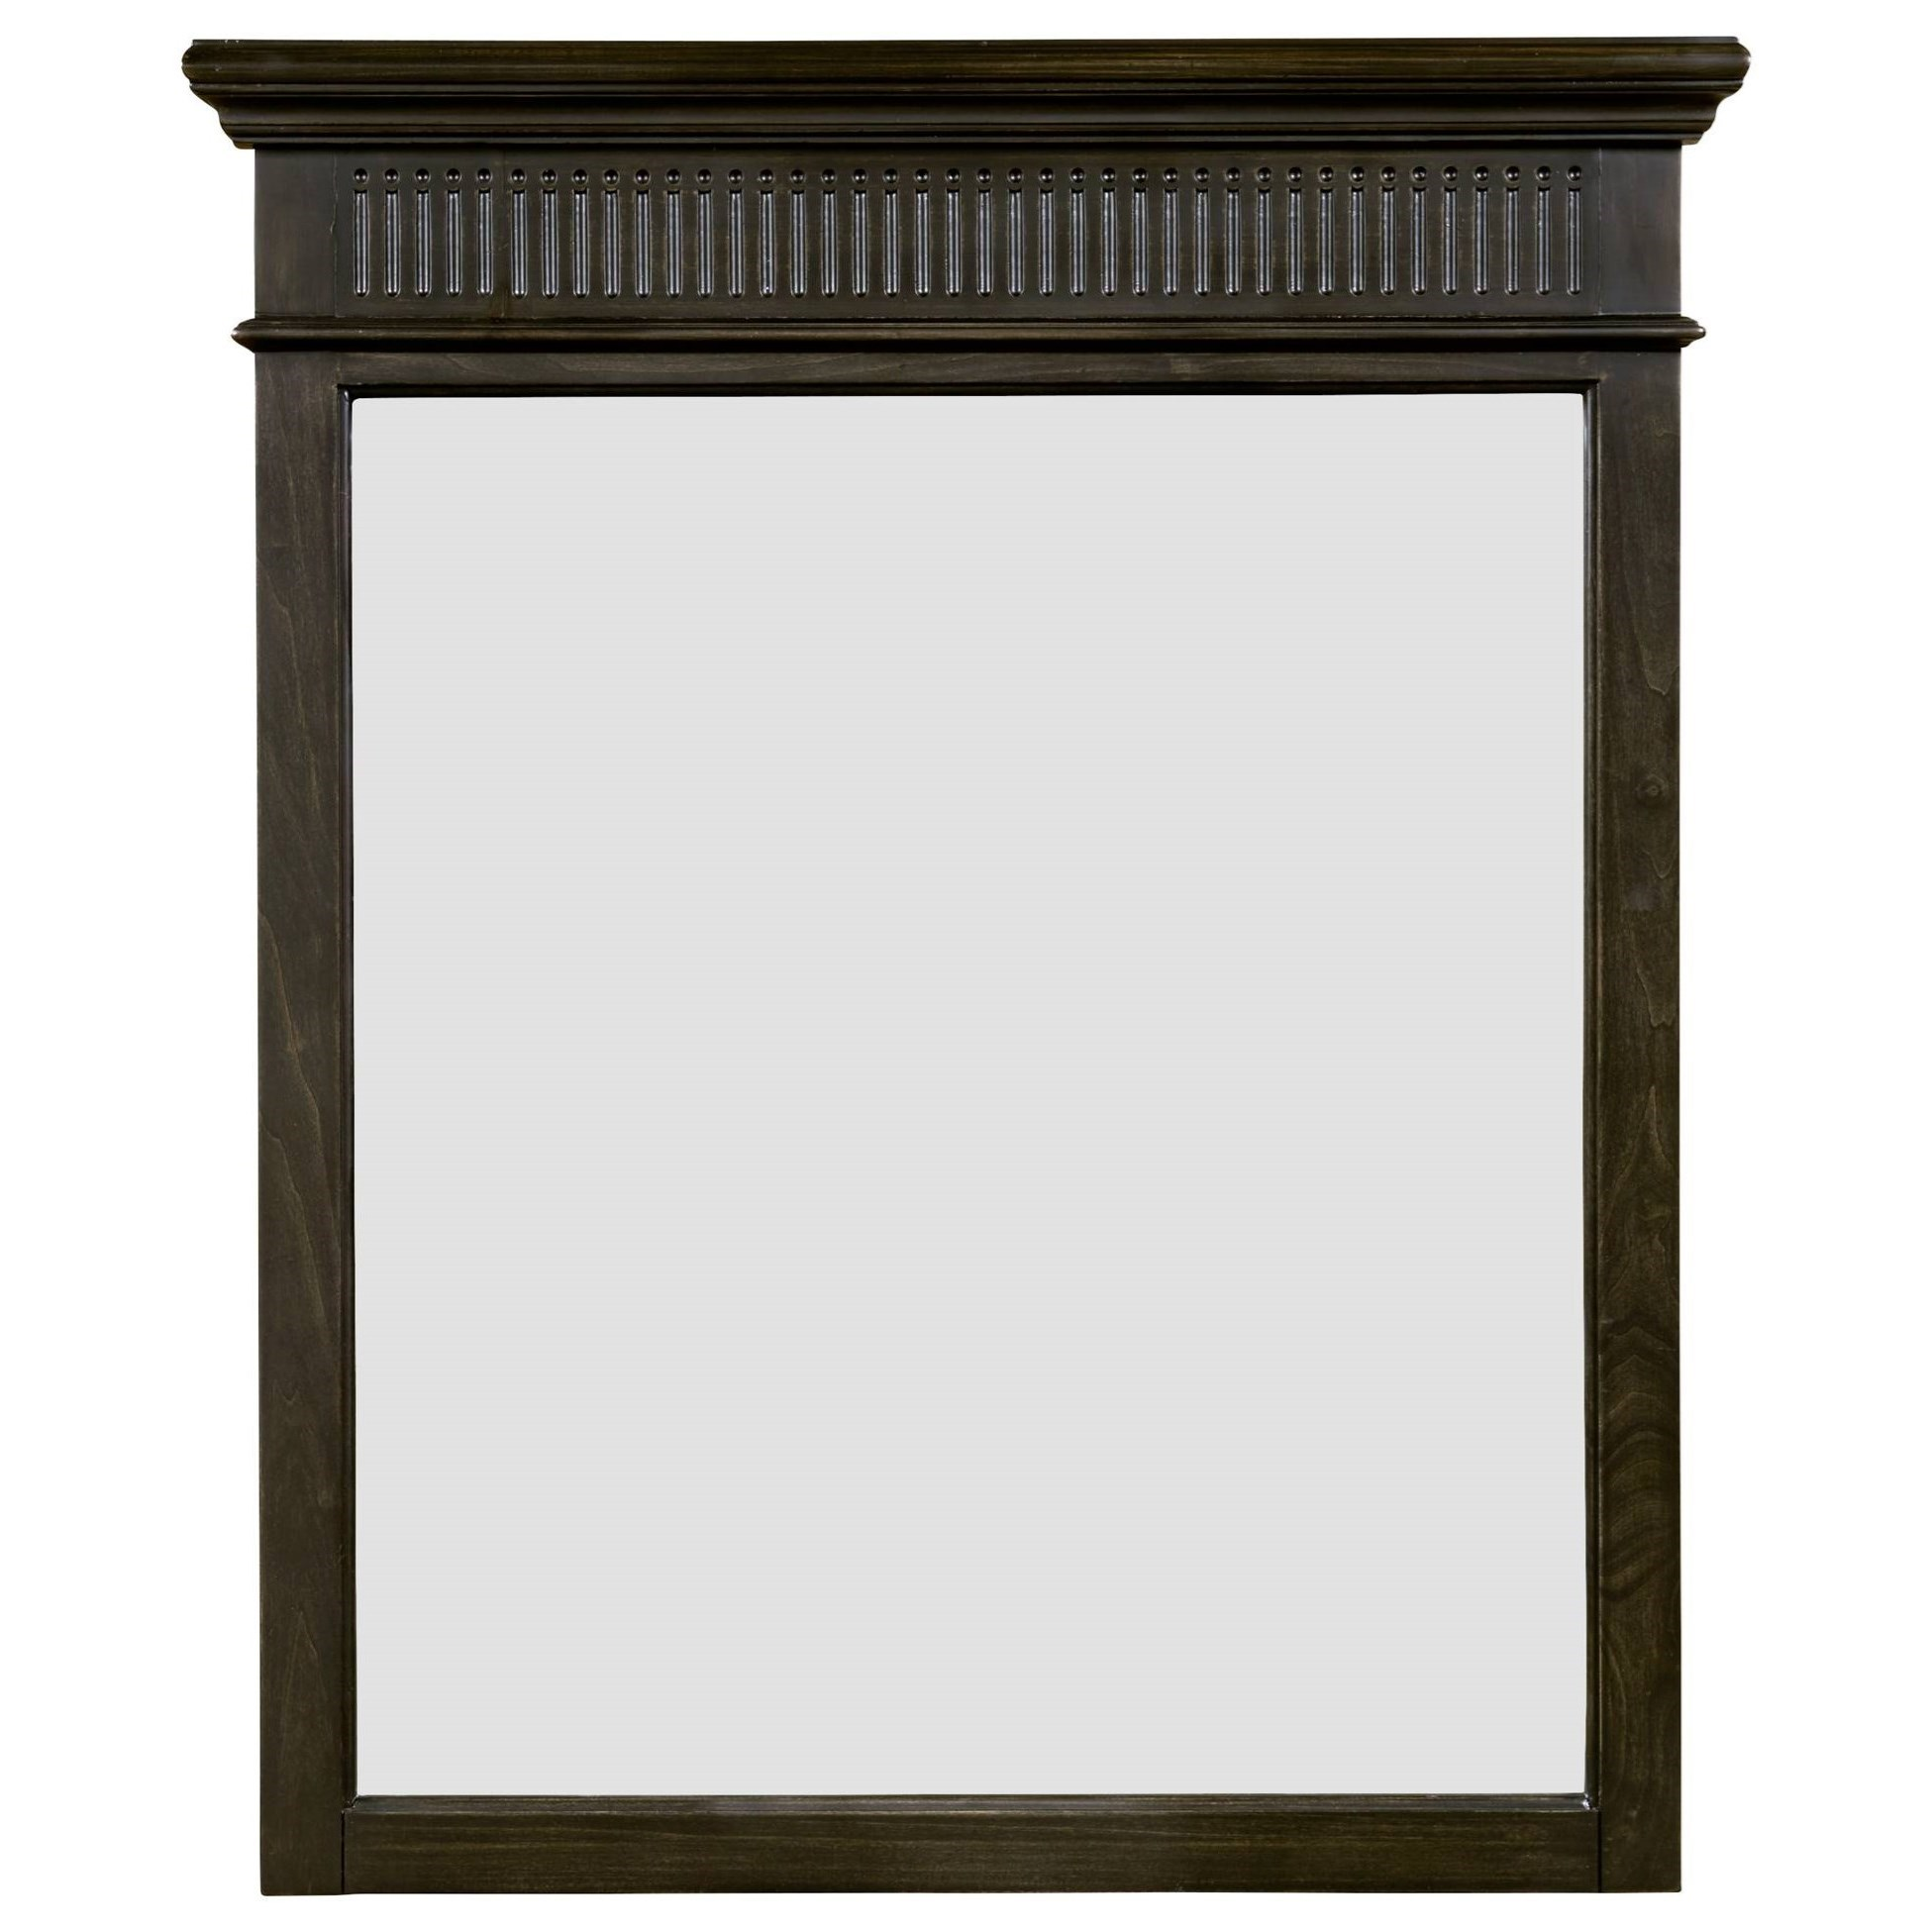 Stone & Leigh Furniture Smiling Hill Mirror - Item Number: 560-83-30